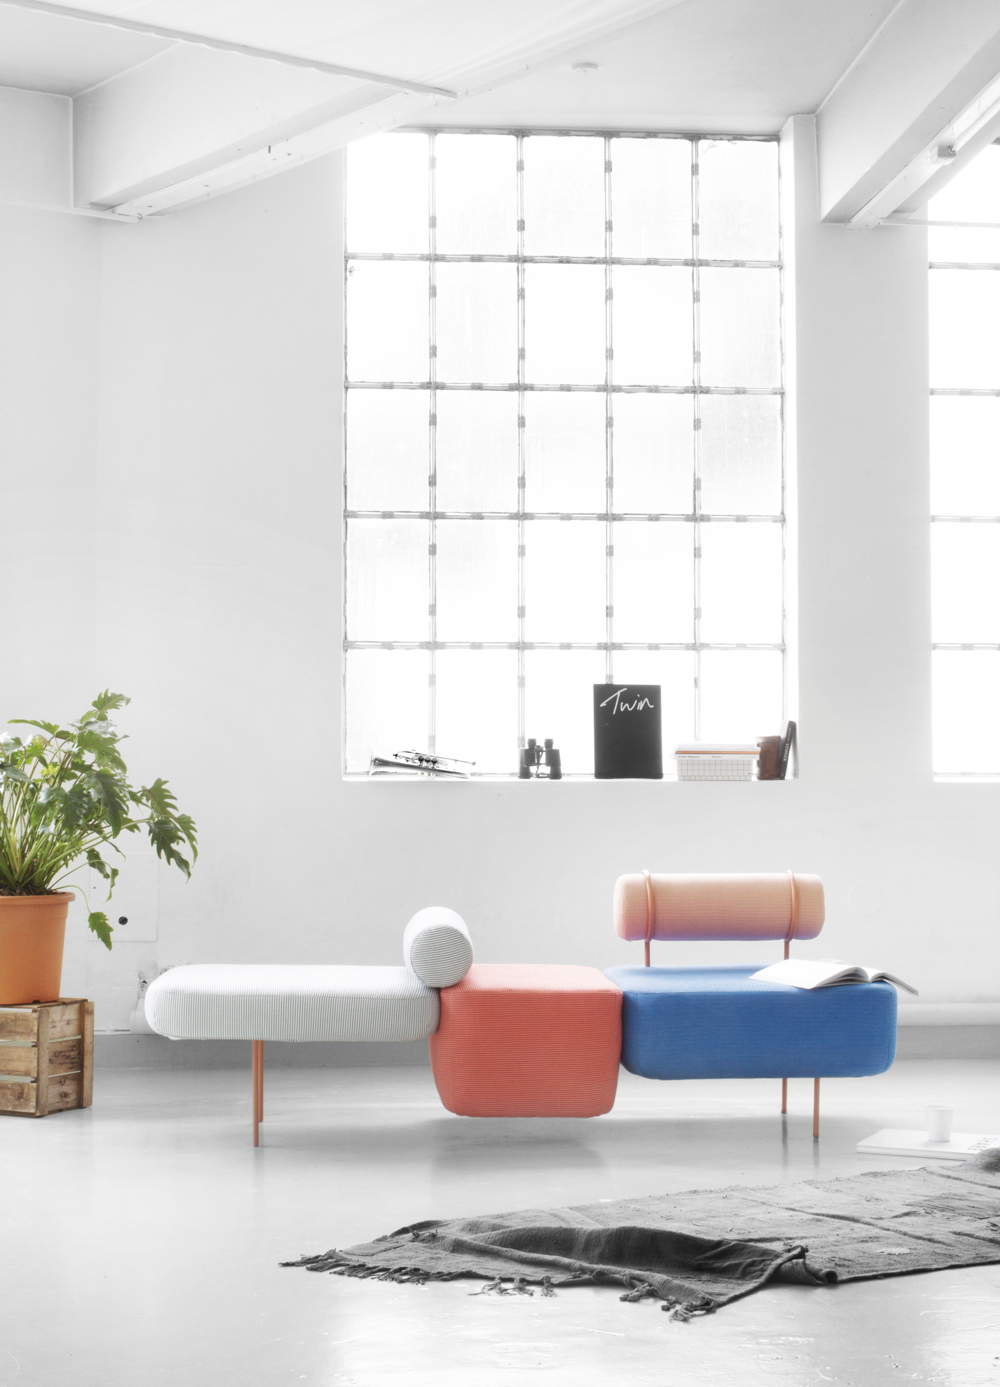 Colourful Hoff modular sofa